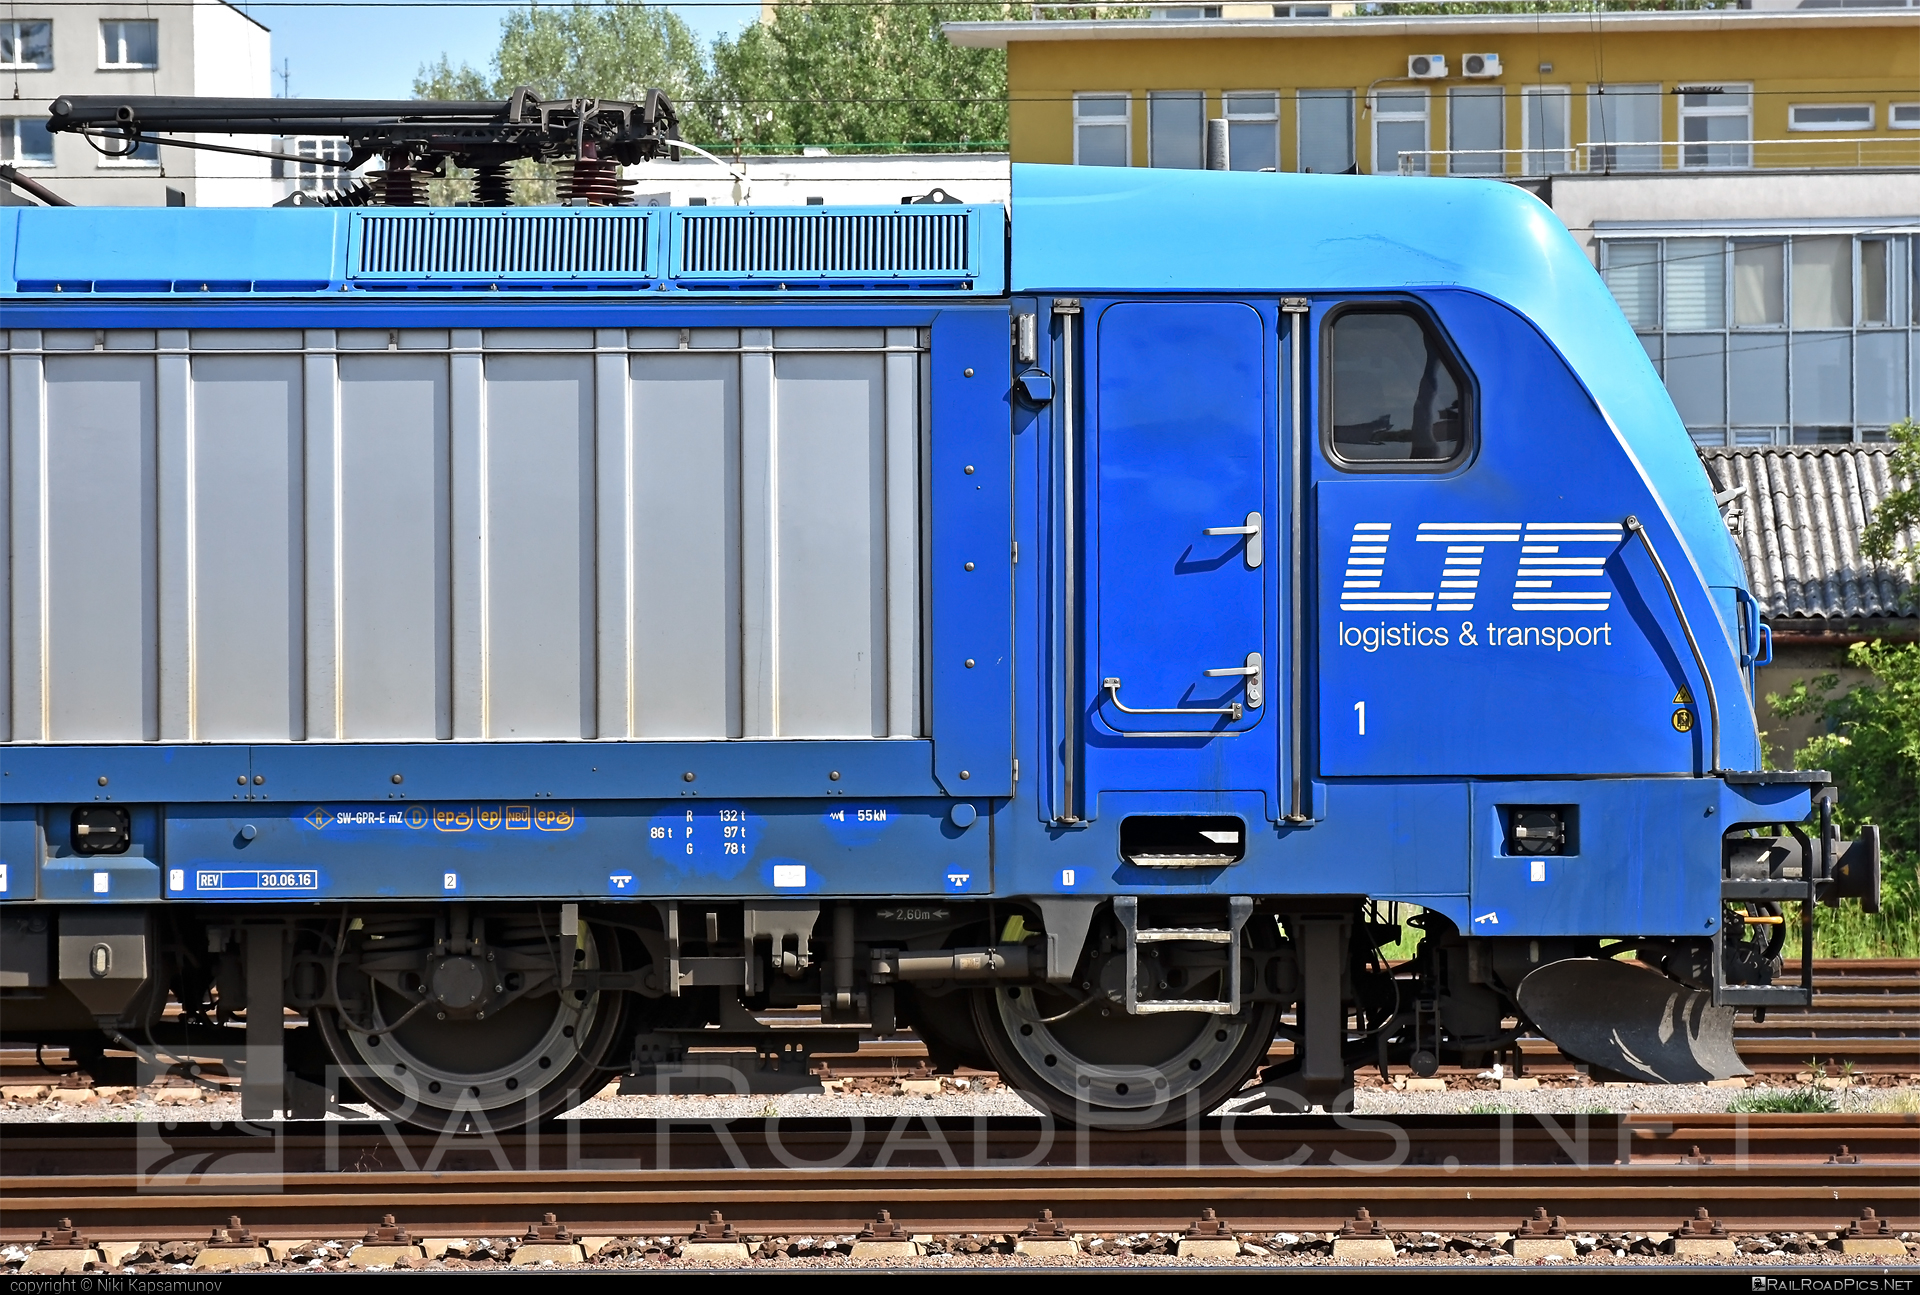 Bombardier TRAXX F160 AC3 - 187 930-3 operated by LTE Logistik und Transport GmbH #bombardier #bombardiertraxx #lte #ltelogistikundtransport #ltelogistikundtransportgmbh #traxx #traxxf160 #traxxf160ac #traxxf160ac3